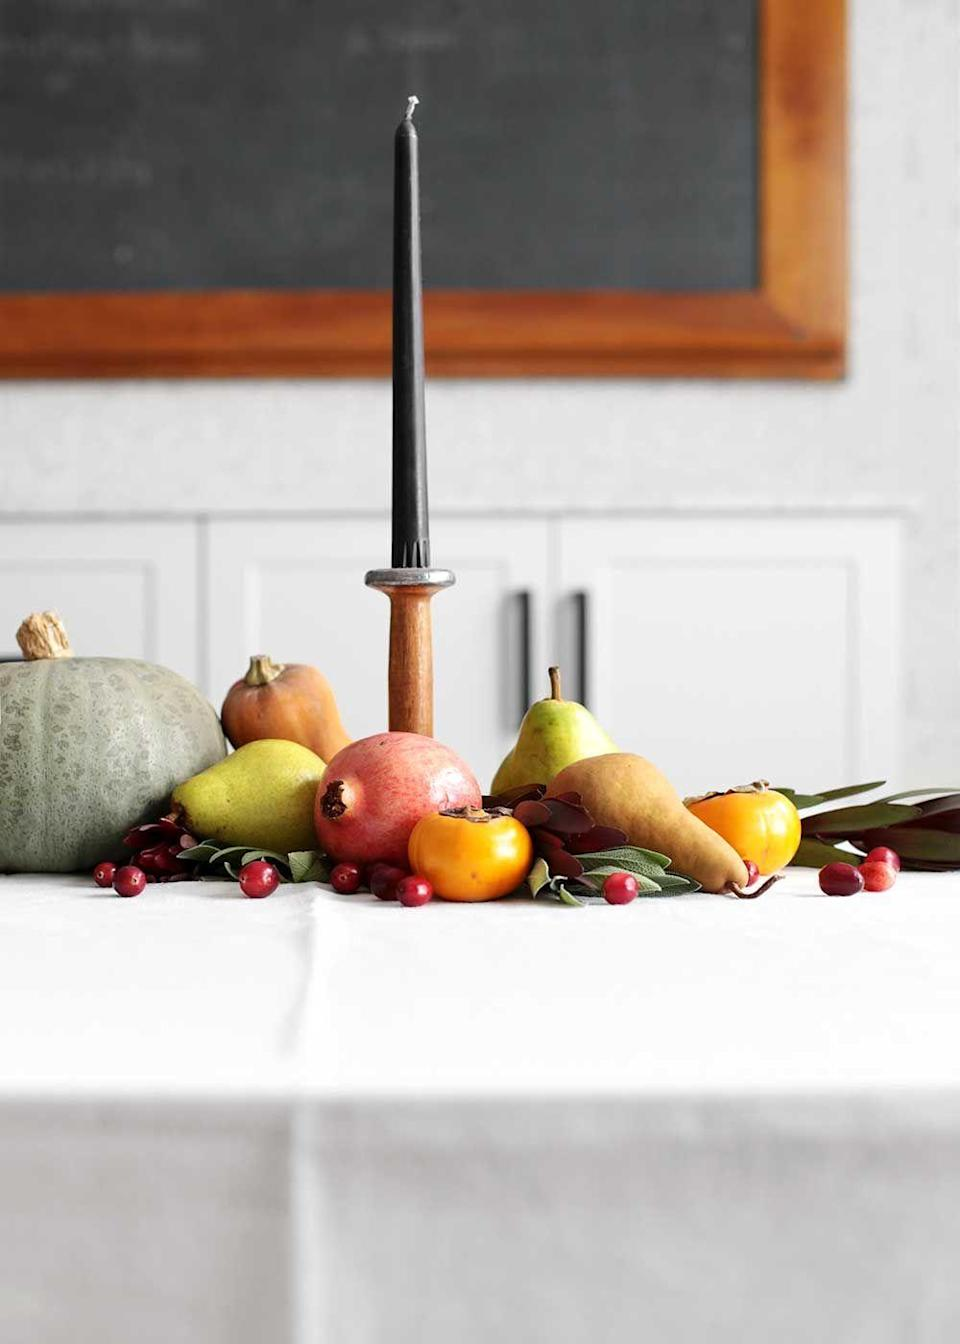 "<p>Proof that you can have your centerpiece ... and eat it, too. Once the festivities wrap up, you can turn the pears, oranges, pumpkins, and pomegranates into post-turkey treats. </p><p><em><a href=""https://www.thefauxmartha.com/2018/11/06/an-edible-thanksgiving-table/"" rel=""nofollow noopener"" target=""_blank"" data-ylk=""slk:Get the tutorial at The Faux Martha »"" class=""link rapid-noclick-resp"">Get the tutorial at The Faux Martha » </a></em></p>"